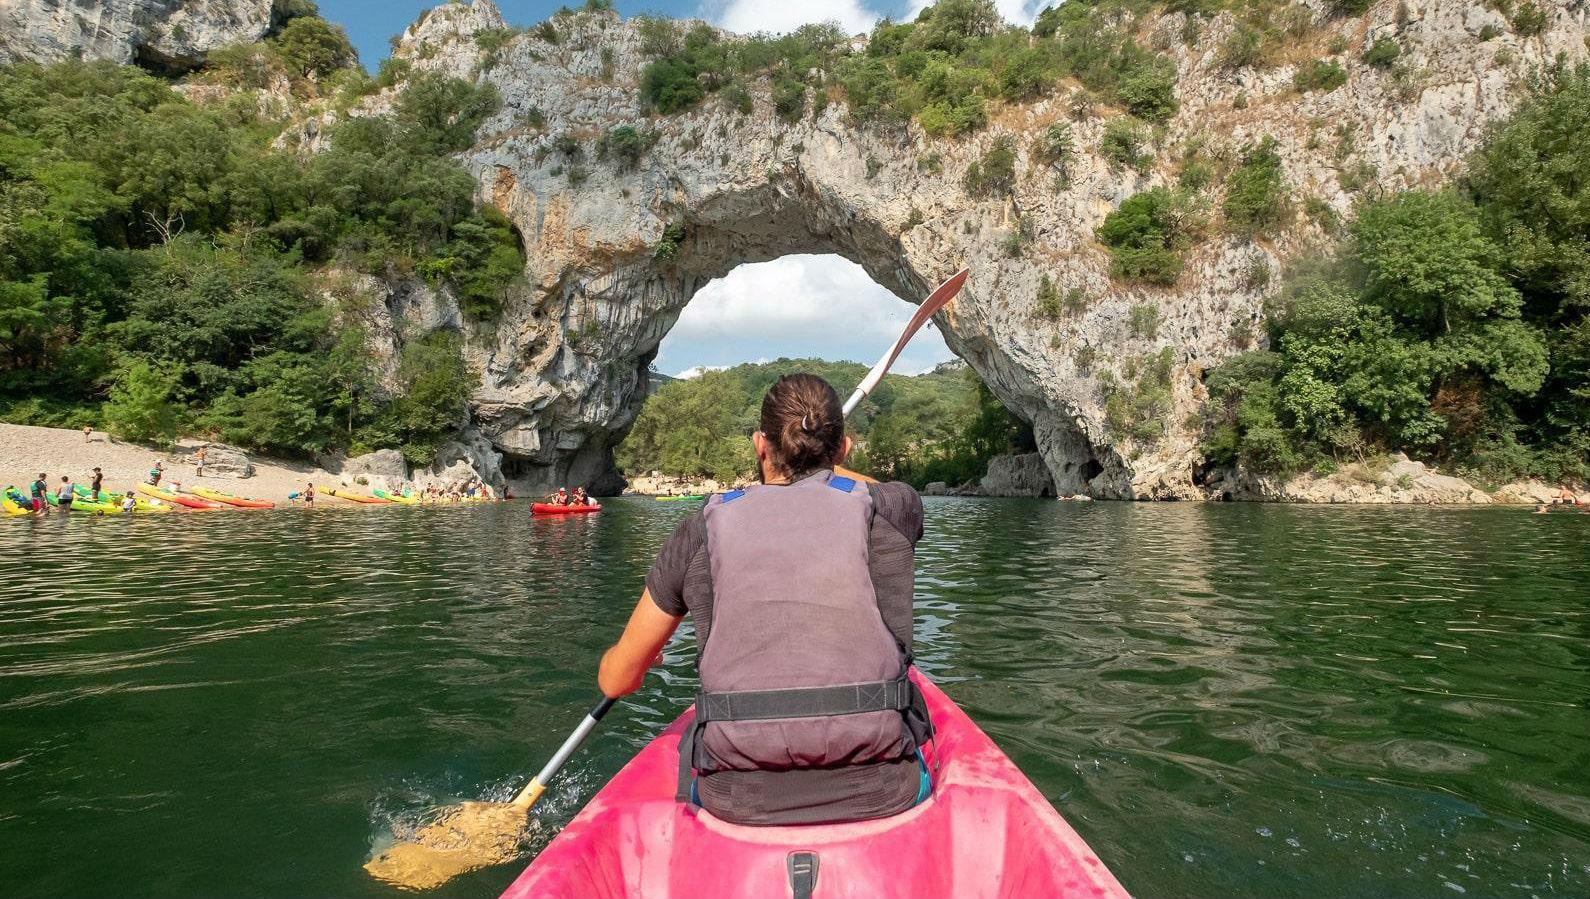 Make Your Canoe Experience Safe